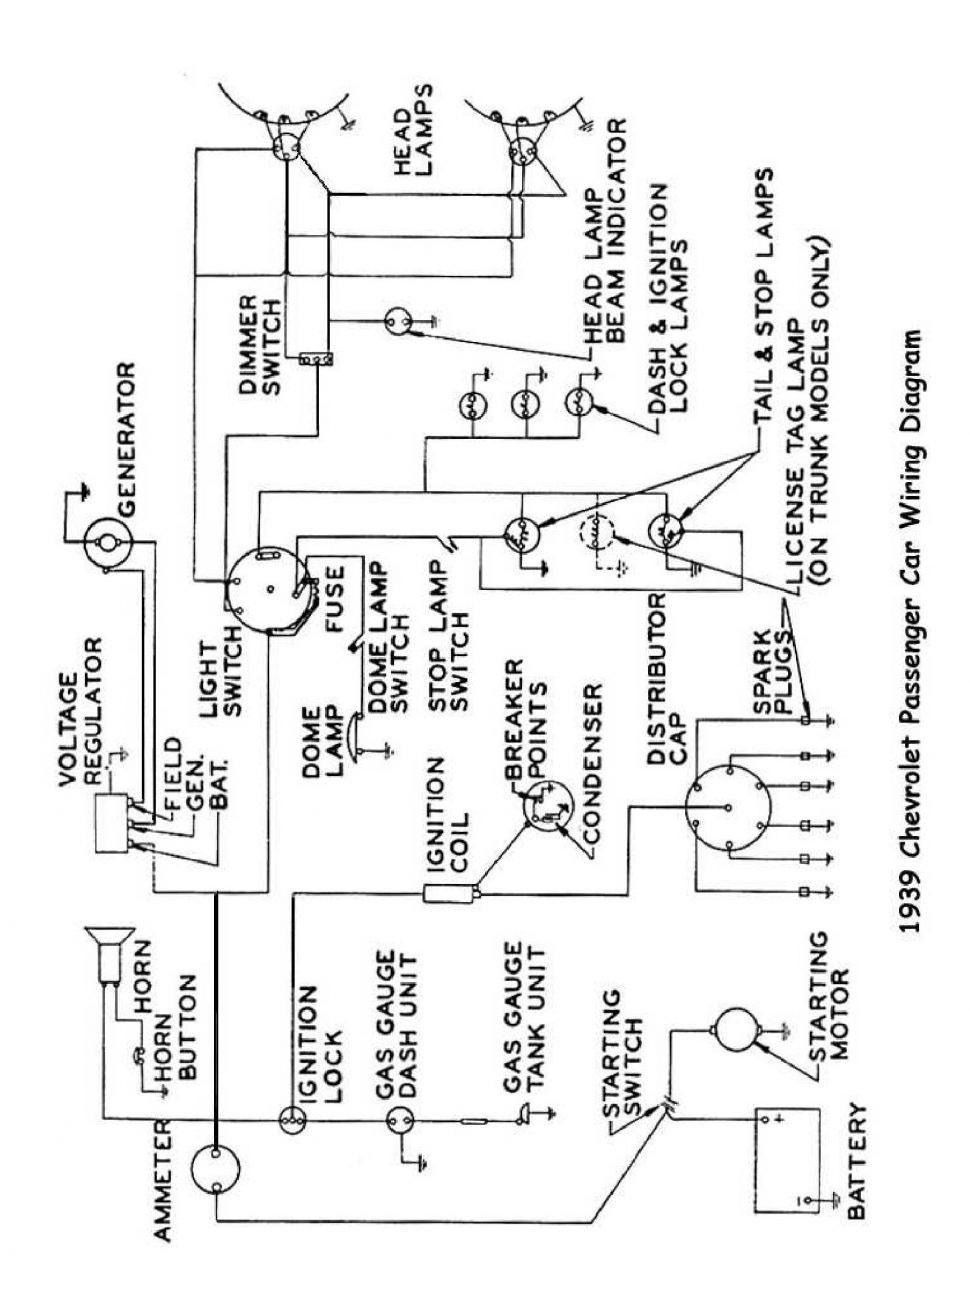 Ultra Remote Car Starter Wiring Diagram Wiringdiagramorg Ignition Circuit Electrical